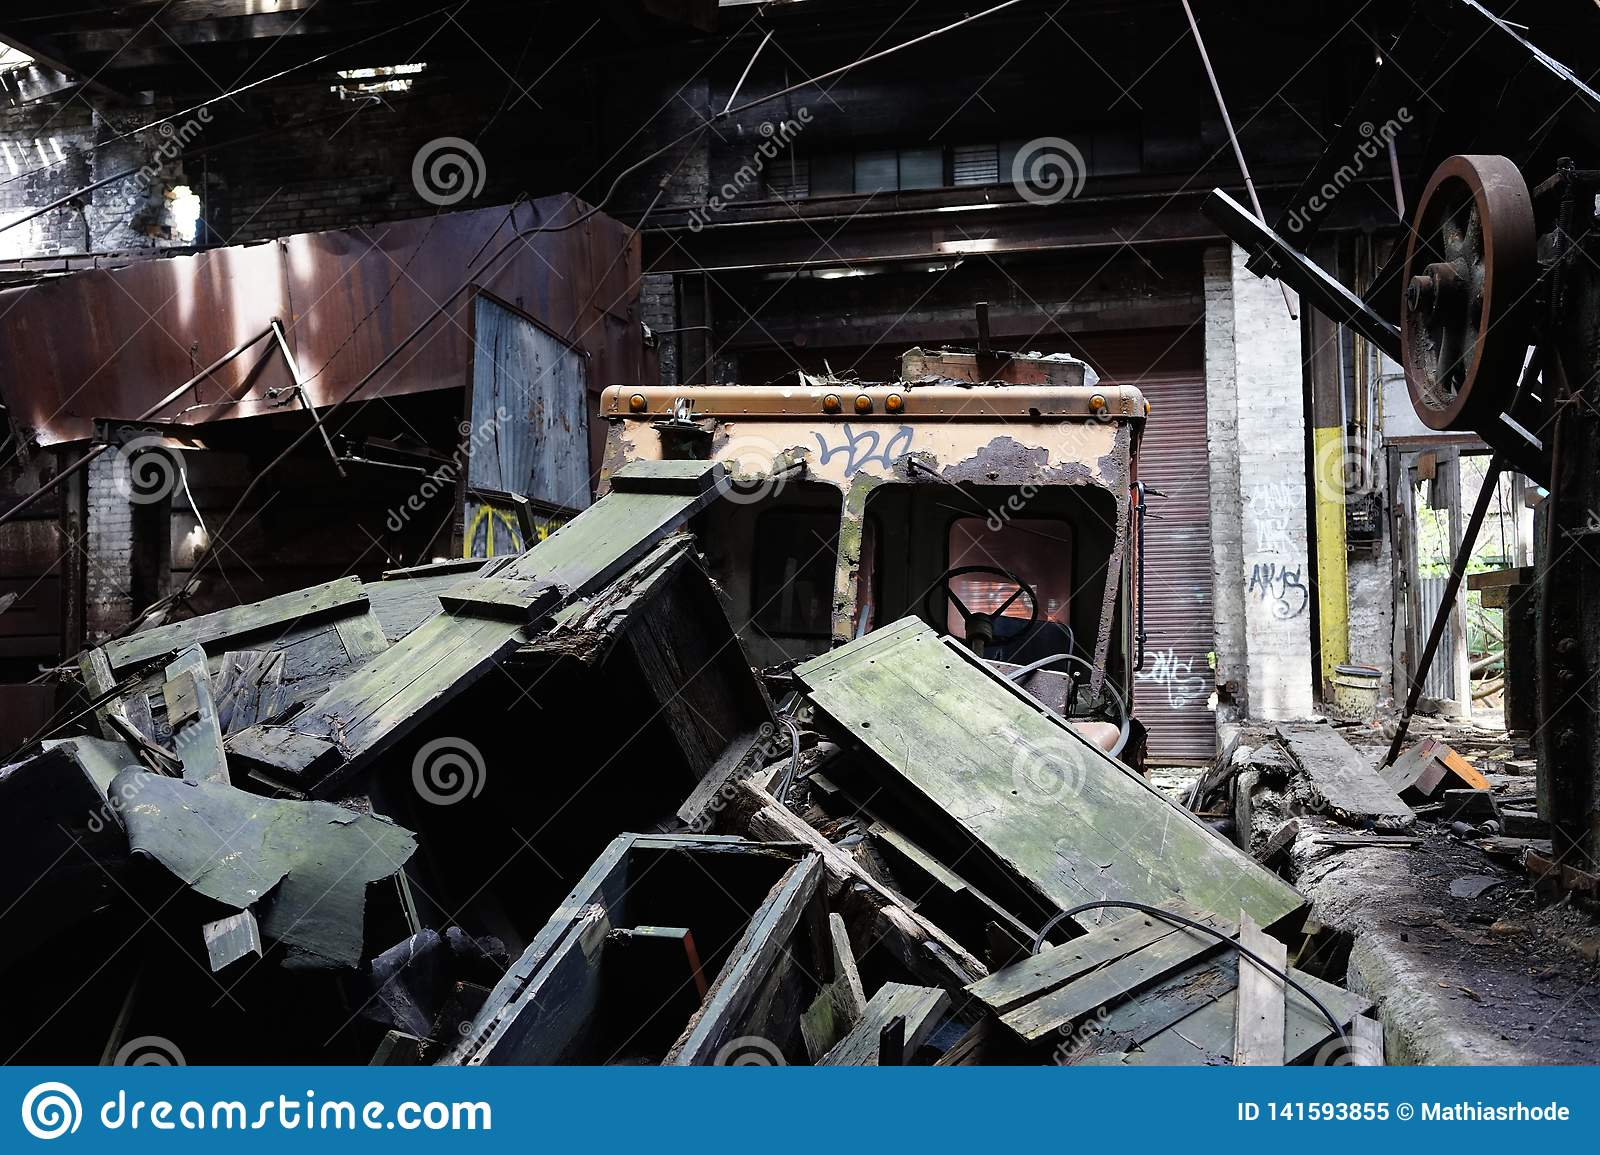 Detroit, Michigan, United States - October 18 2018: View of the abandoned Gray Iron Factory in Detroit. Detroit Gray